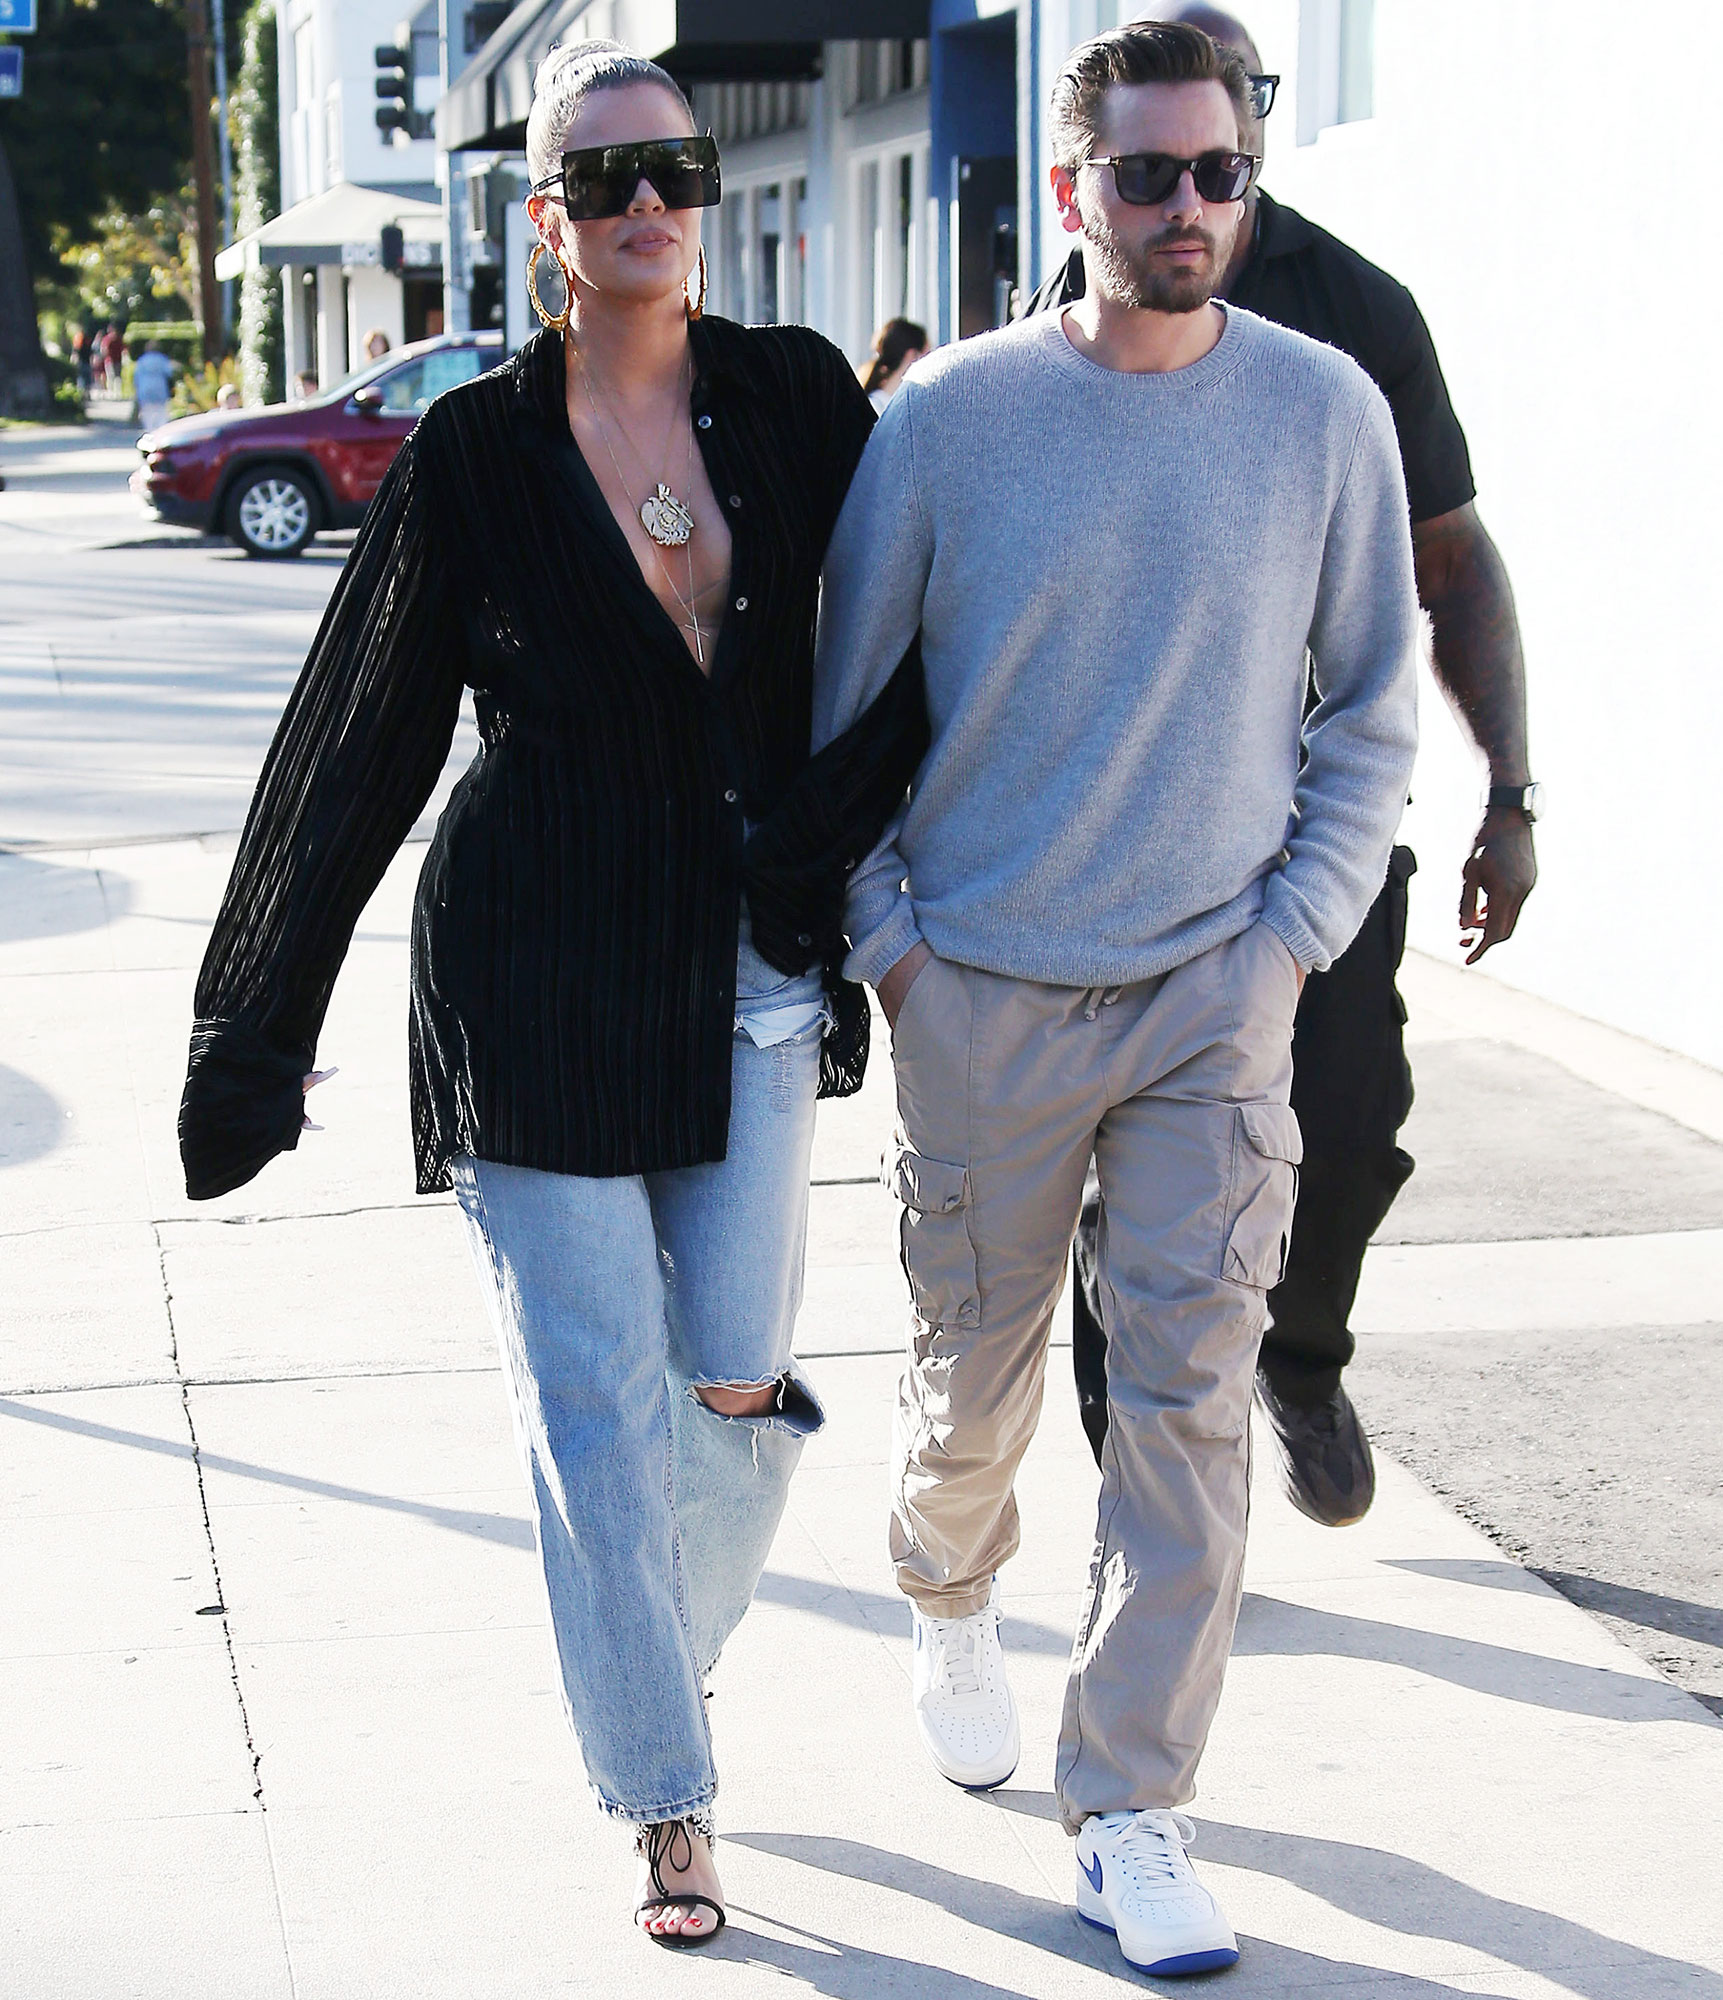 Scott Disick Sees Going to SNL Afterparty With the Kardashians After DM Drama